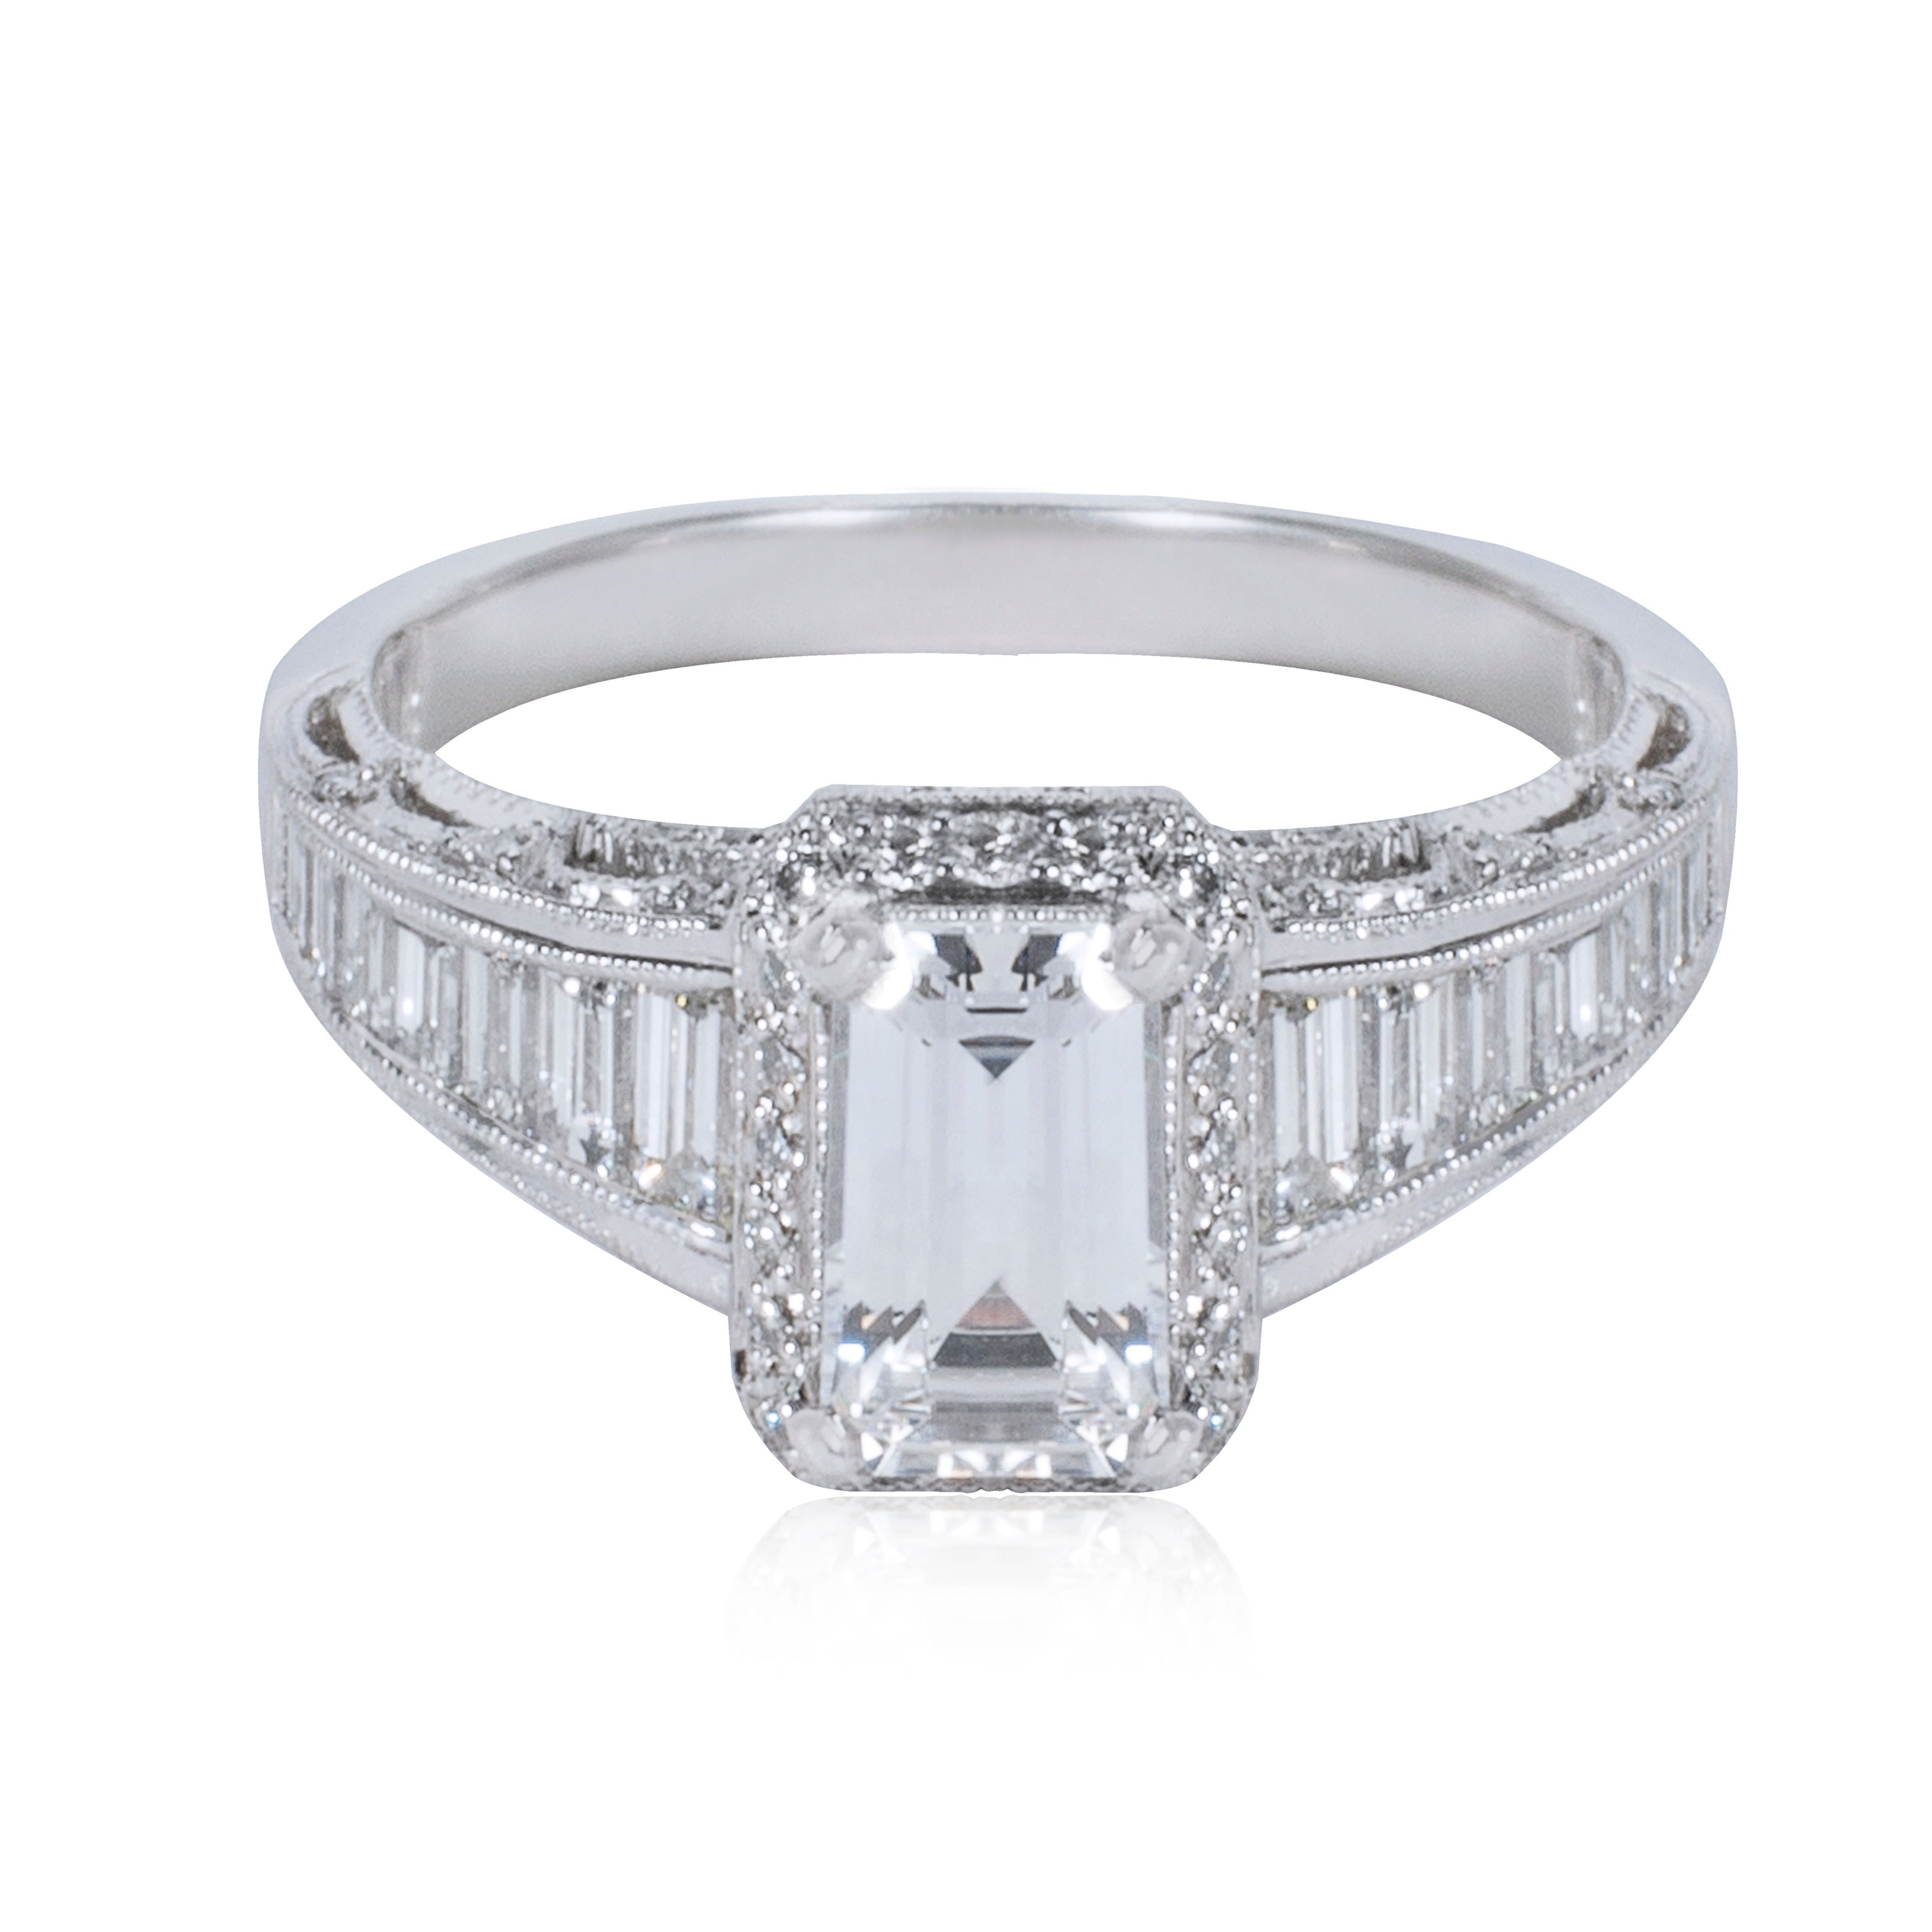 Tacori Platinum 7 8ct Diamond Square Cut Engagement Ring Setting Overstock 10430718